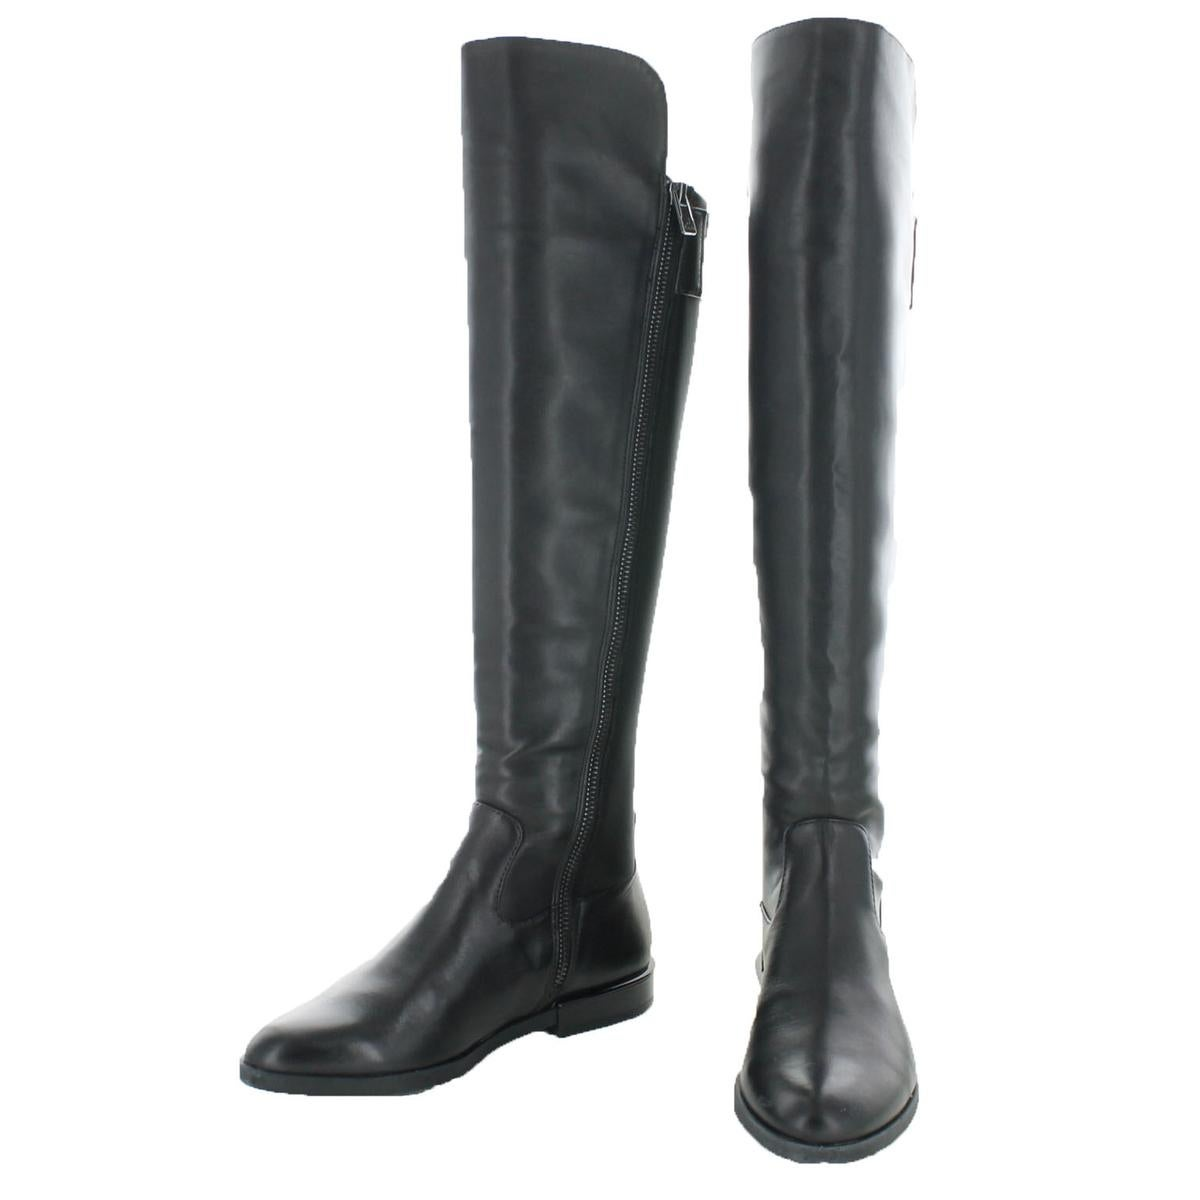 83eeb81d69f Shop Calvin Klein Womens Priya Over-The-Knee Boots Pointed Toe Riding Boot  - Free Shipping Today - Overstock - 22201301